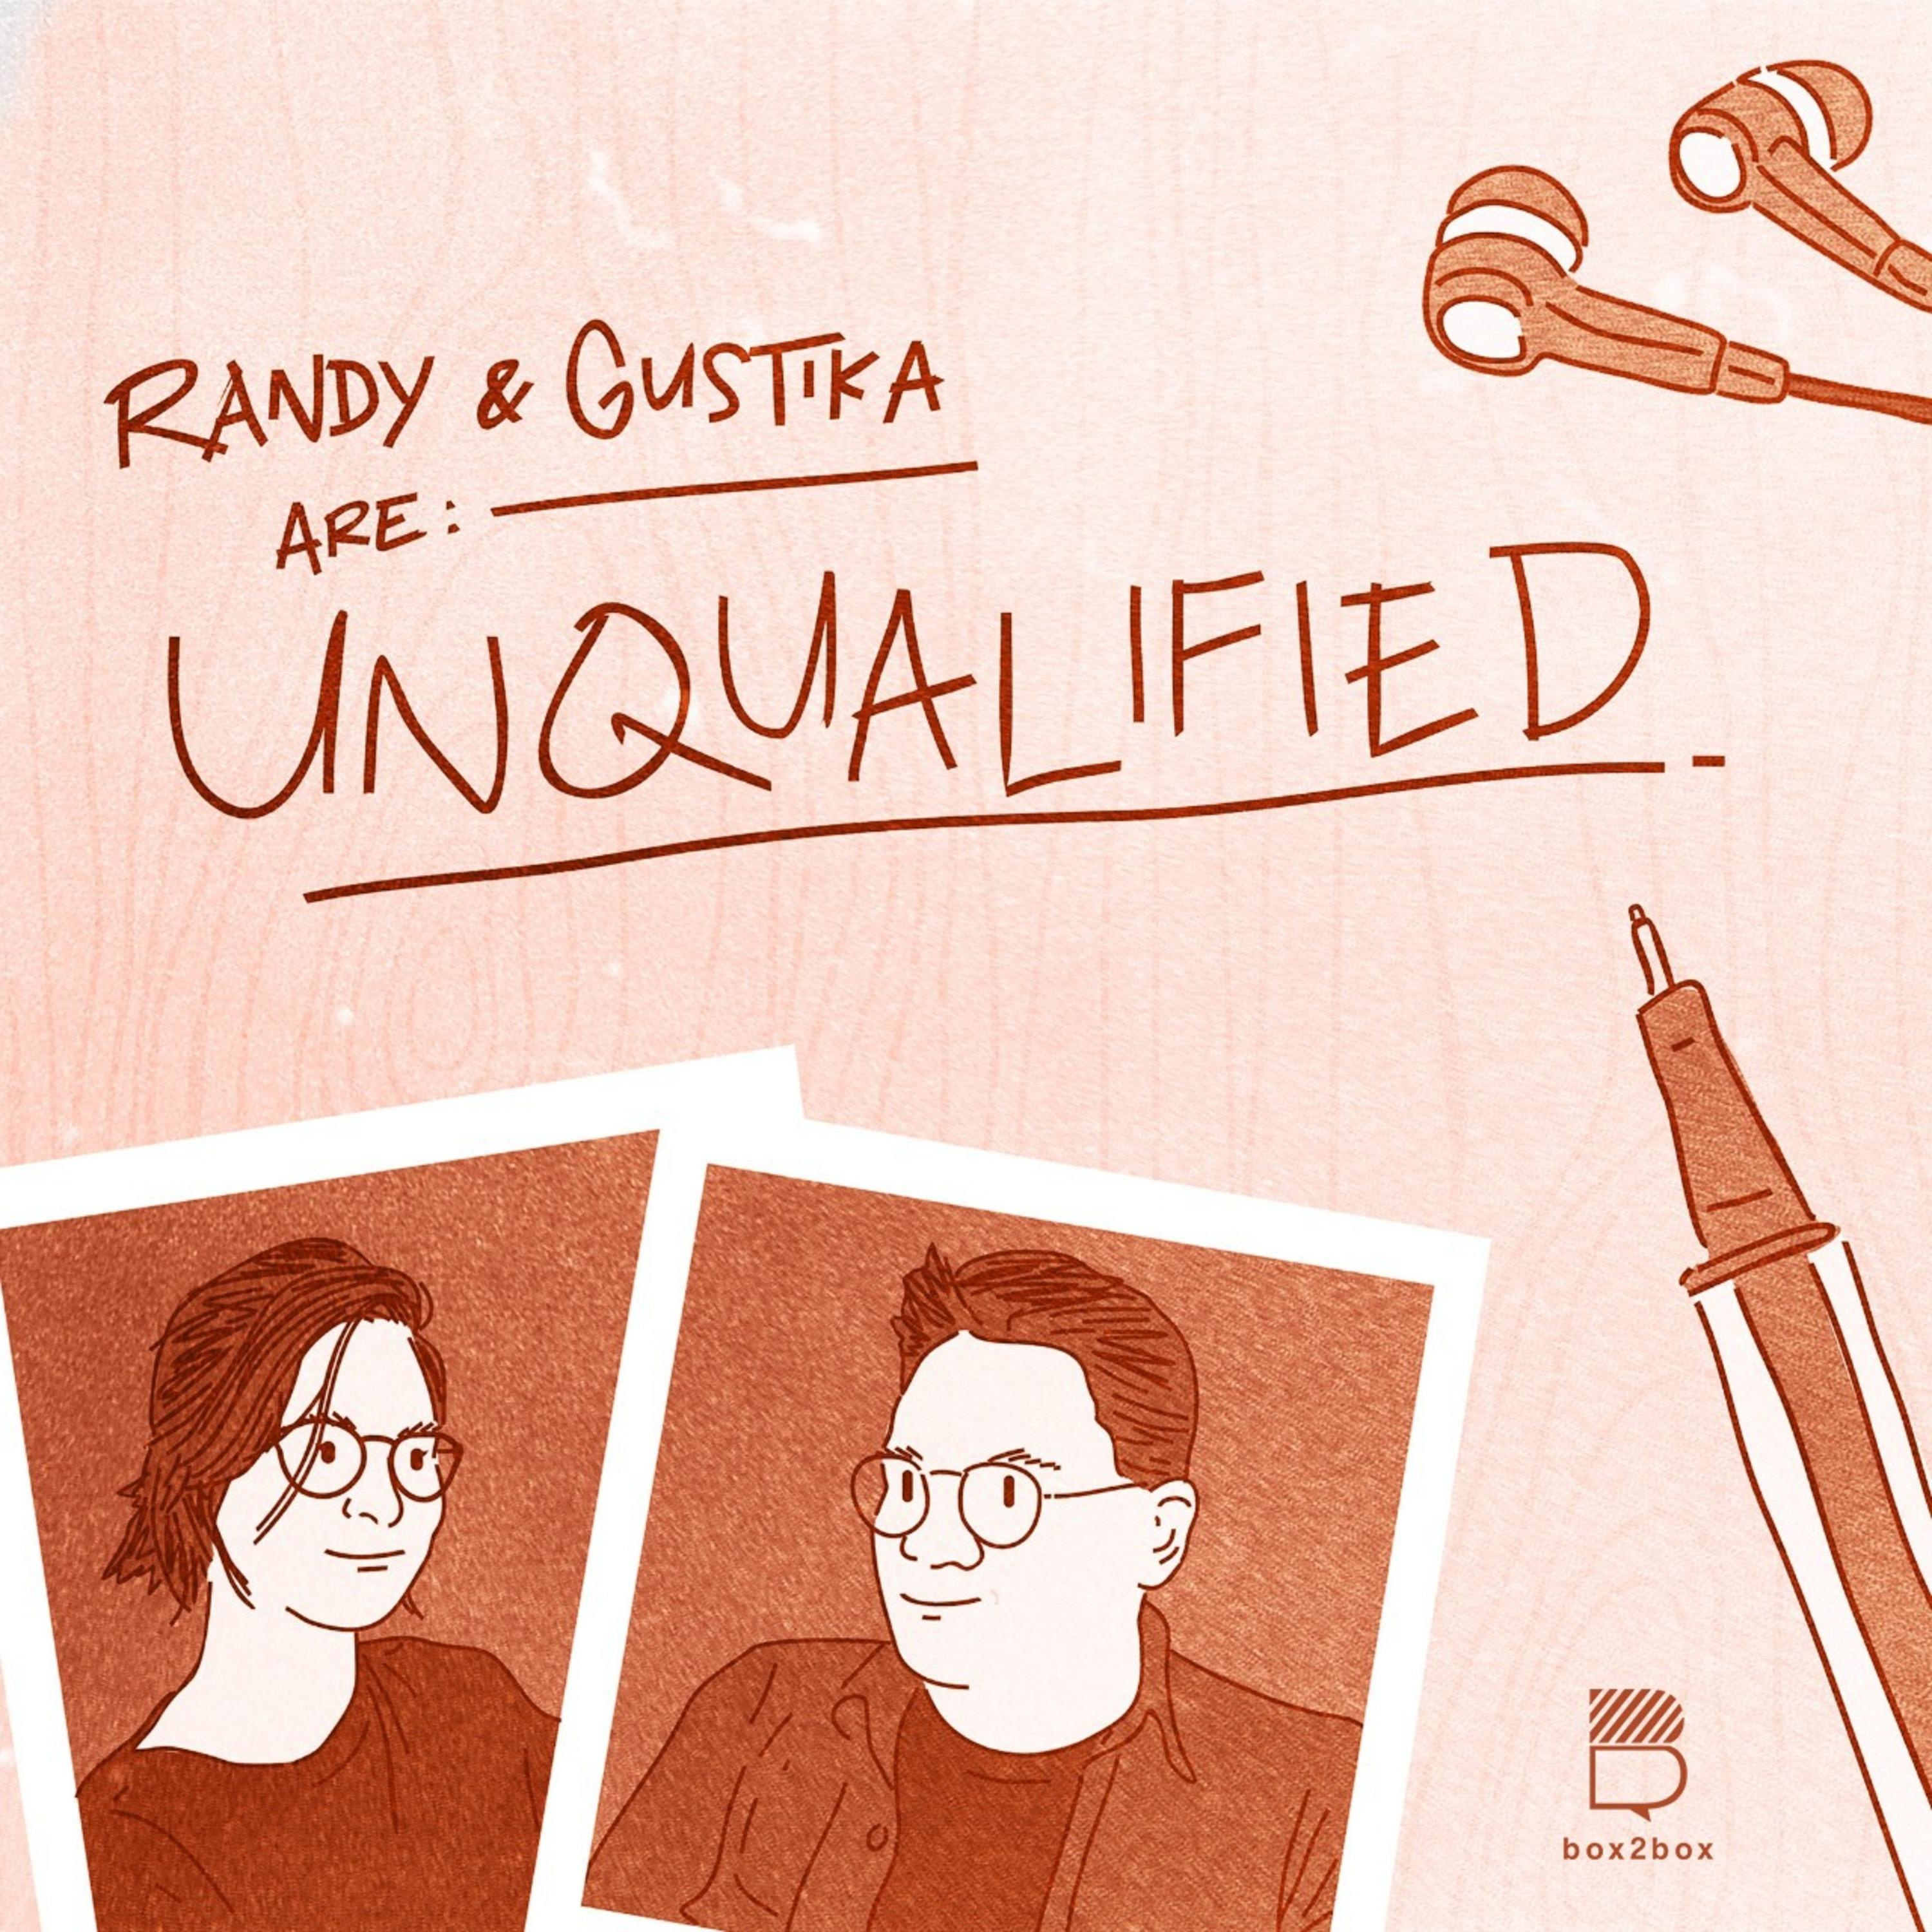 Randy and Gustika are Unqualified